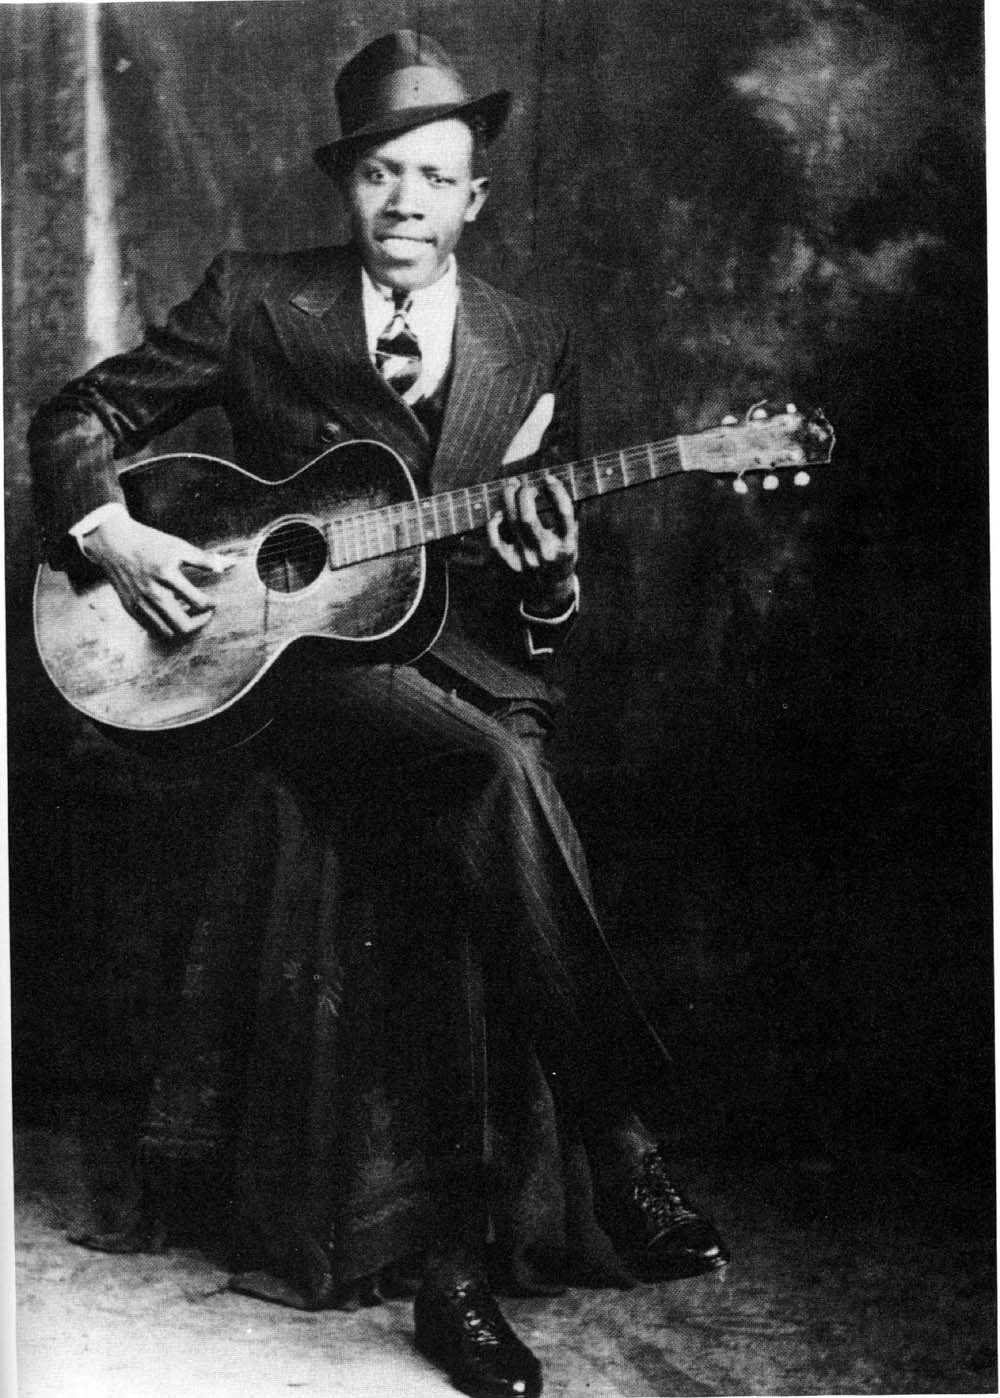 Robert Johnson (1911 – 1938)